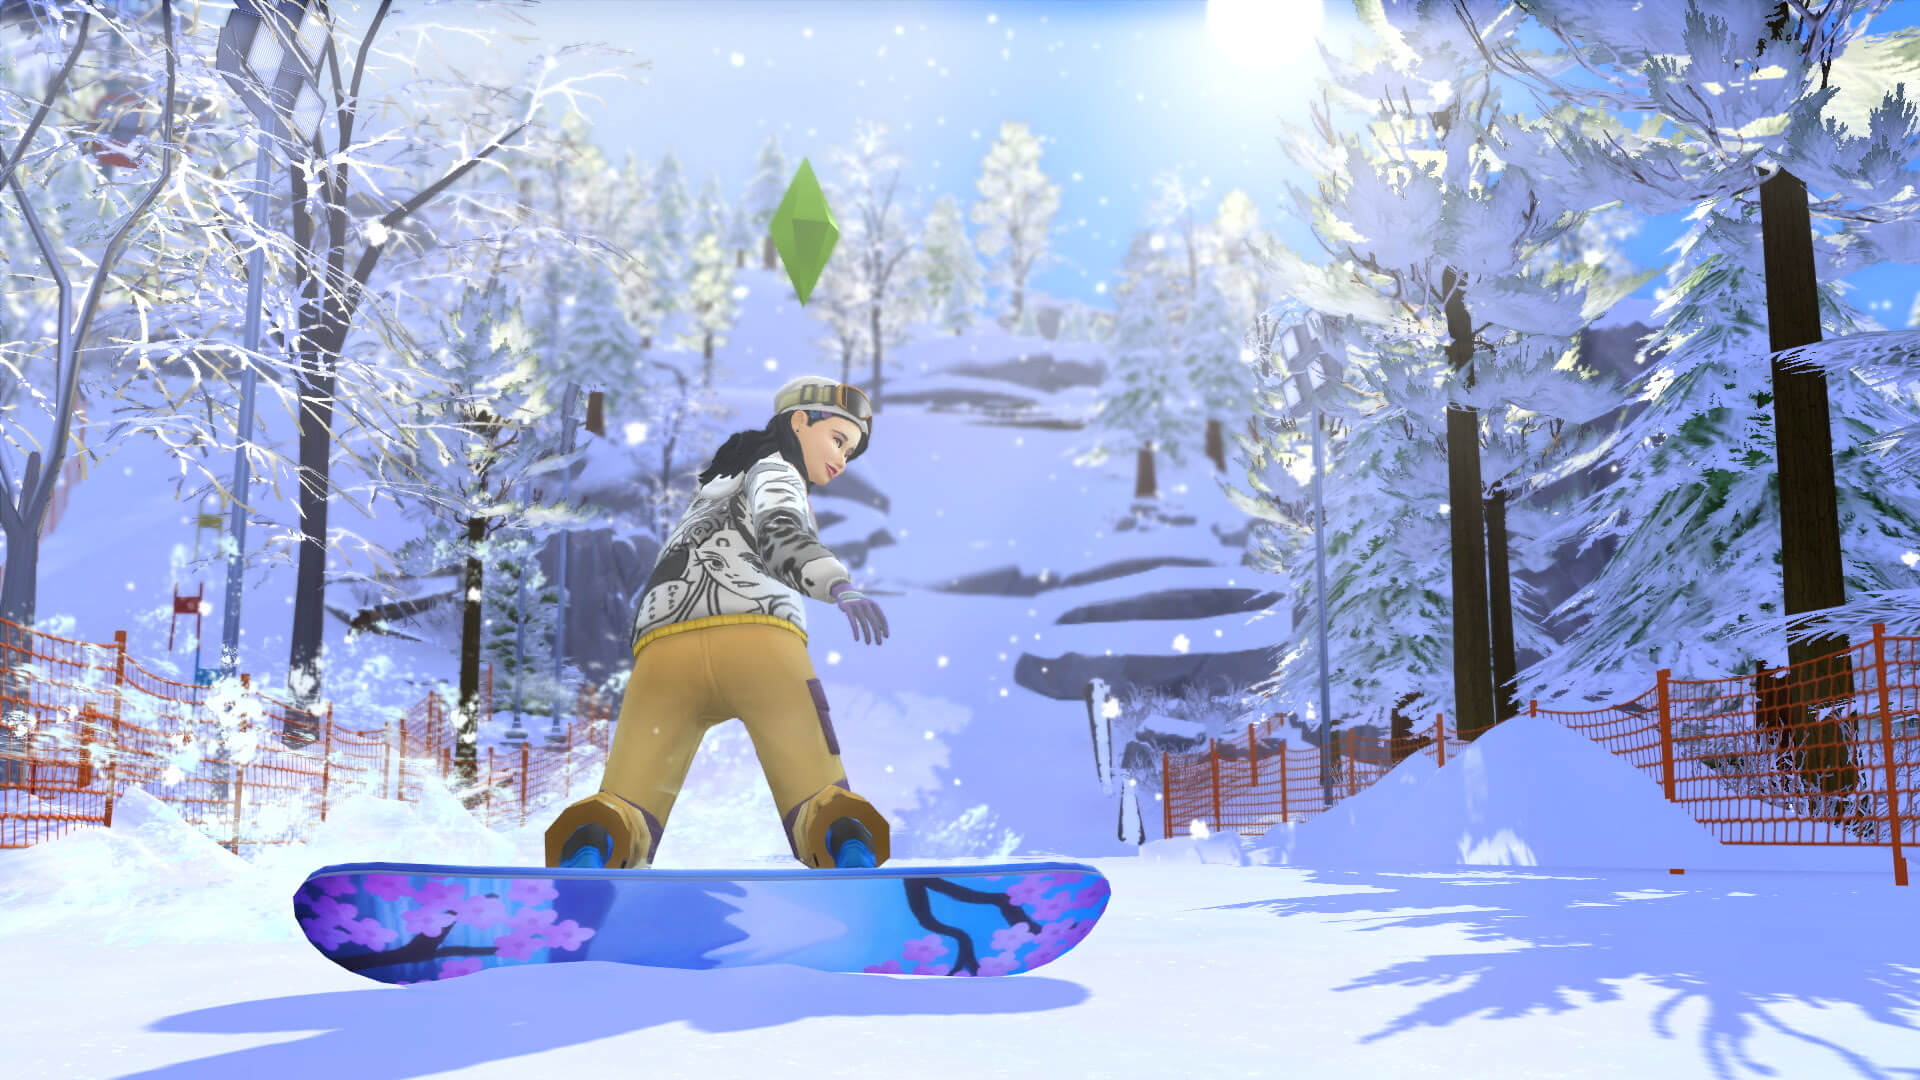 Download The Sims 4 Snowy Escape-CODEX In PC Crack [ Torrent ]